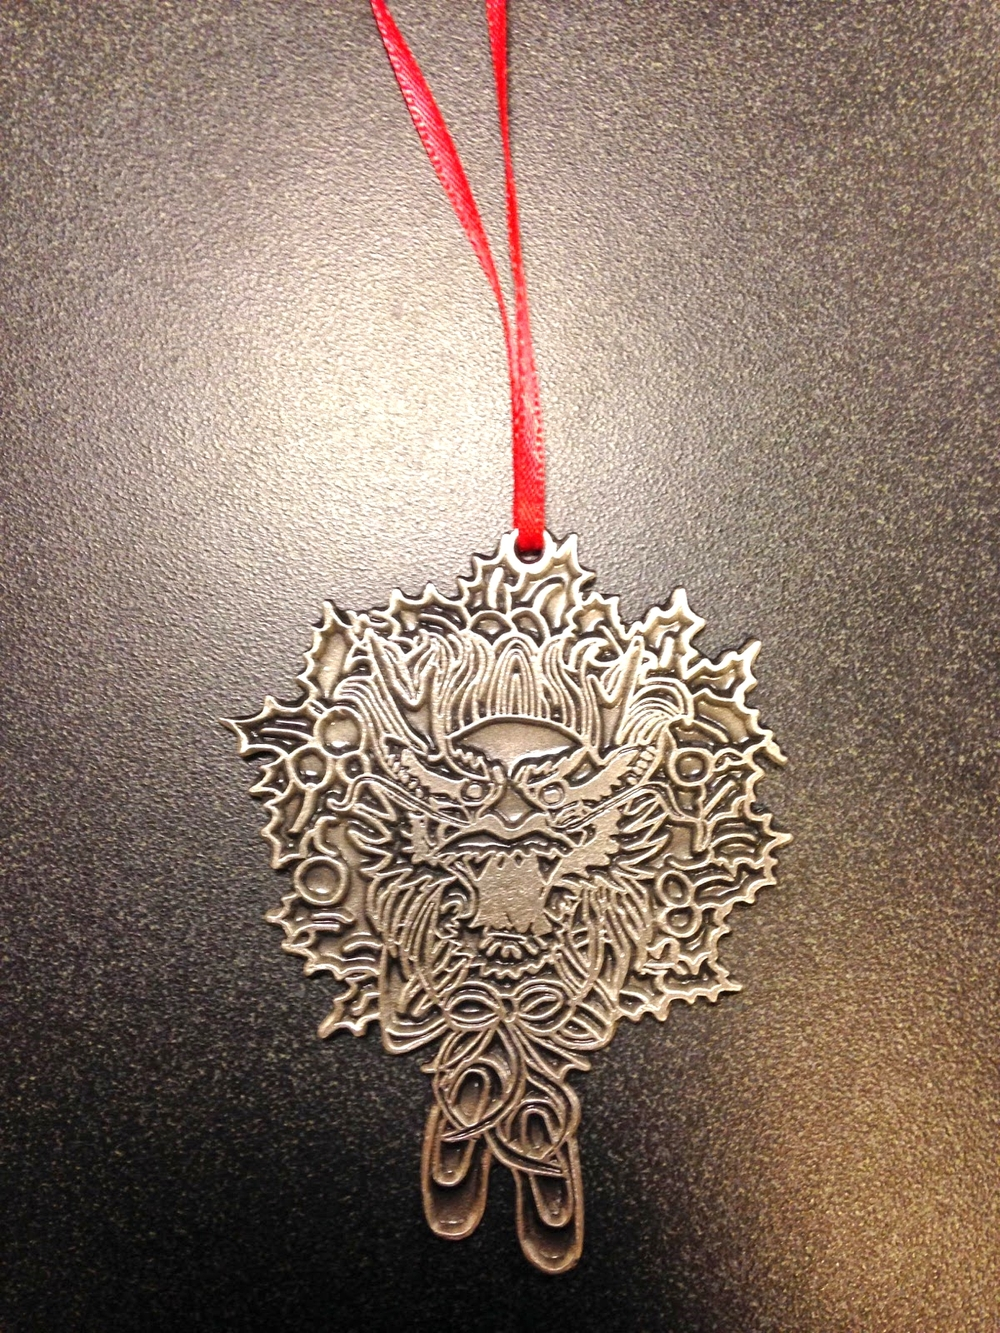 Medallions for the opening night of the Nutcracker!